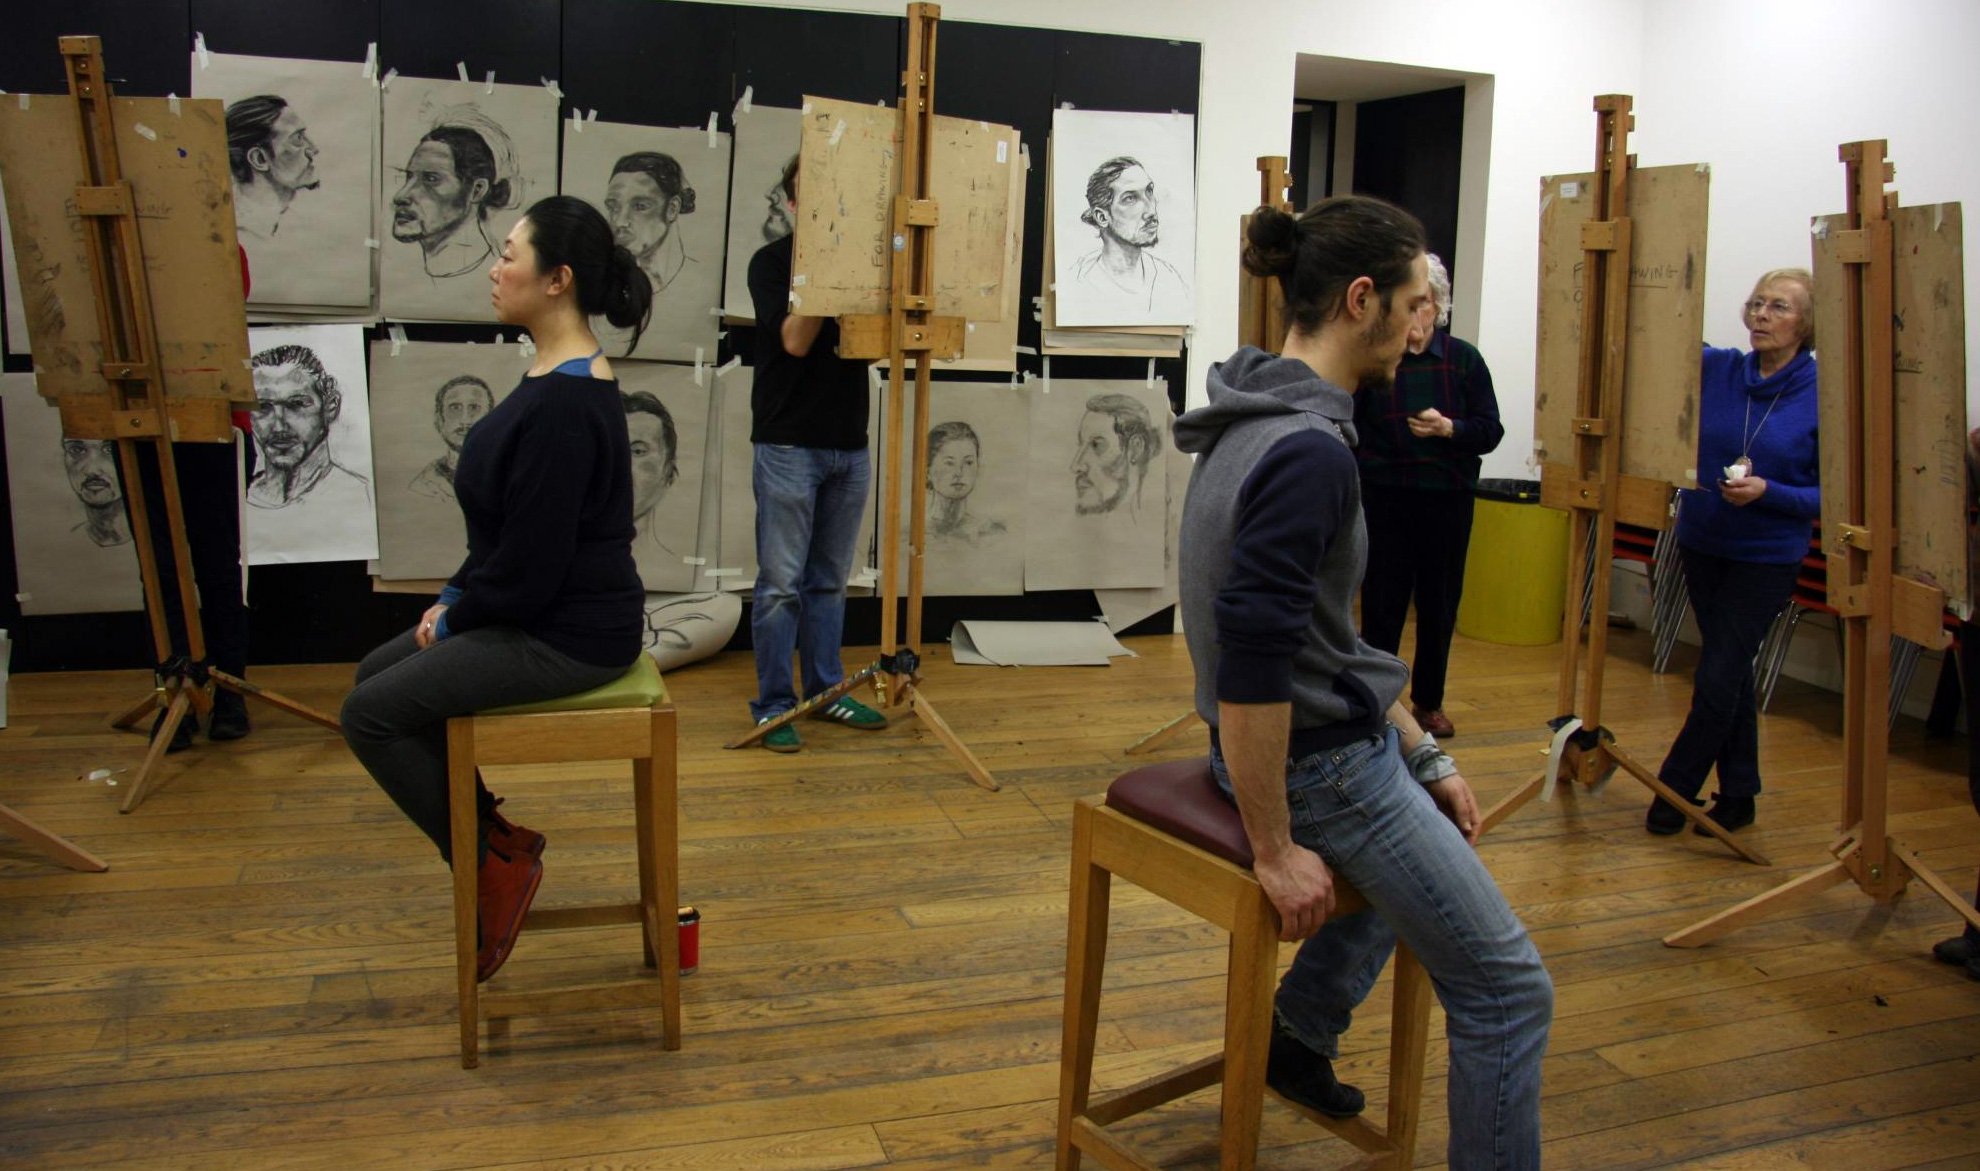 How to draw the human head session with participants at easels and models seated